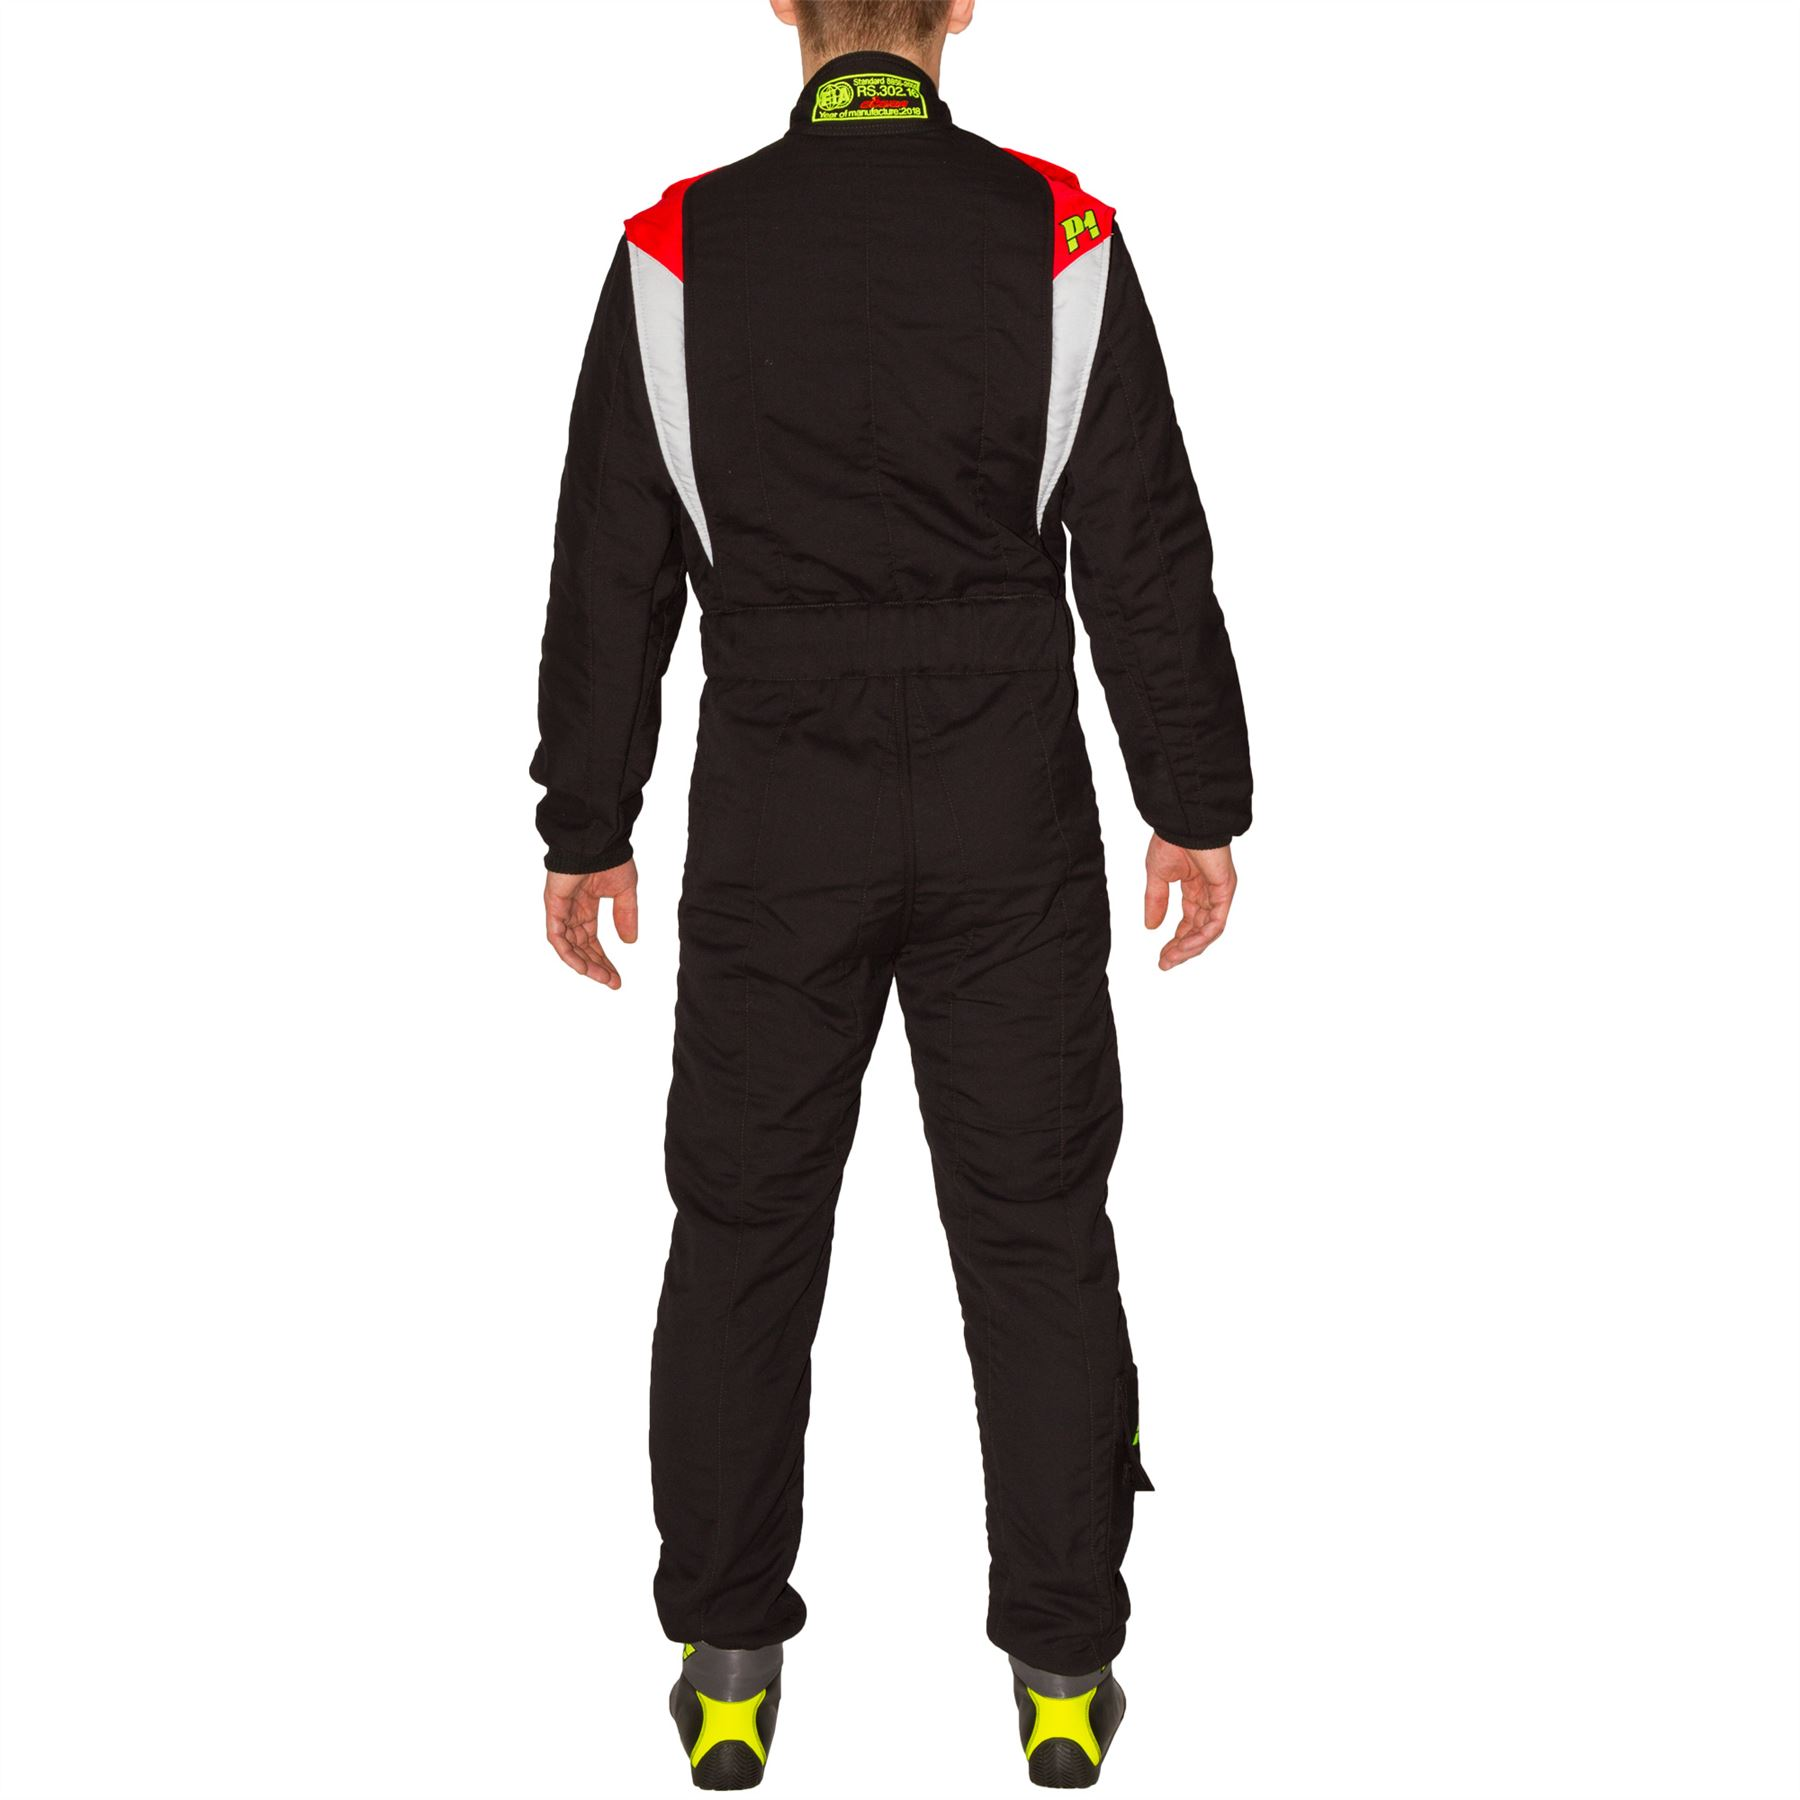 Indexbild 4 - P1-Racewear-Smart-X3-2-Layer-Race-Rally-Suit-Nomex-FIA-Approved